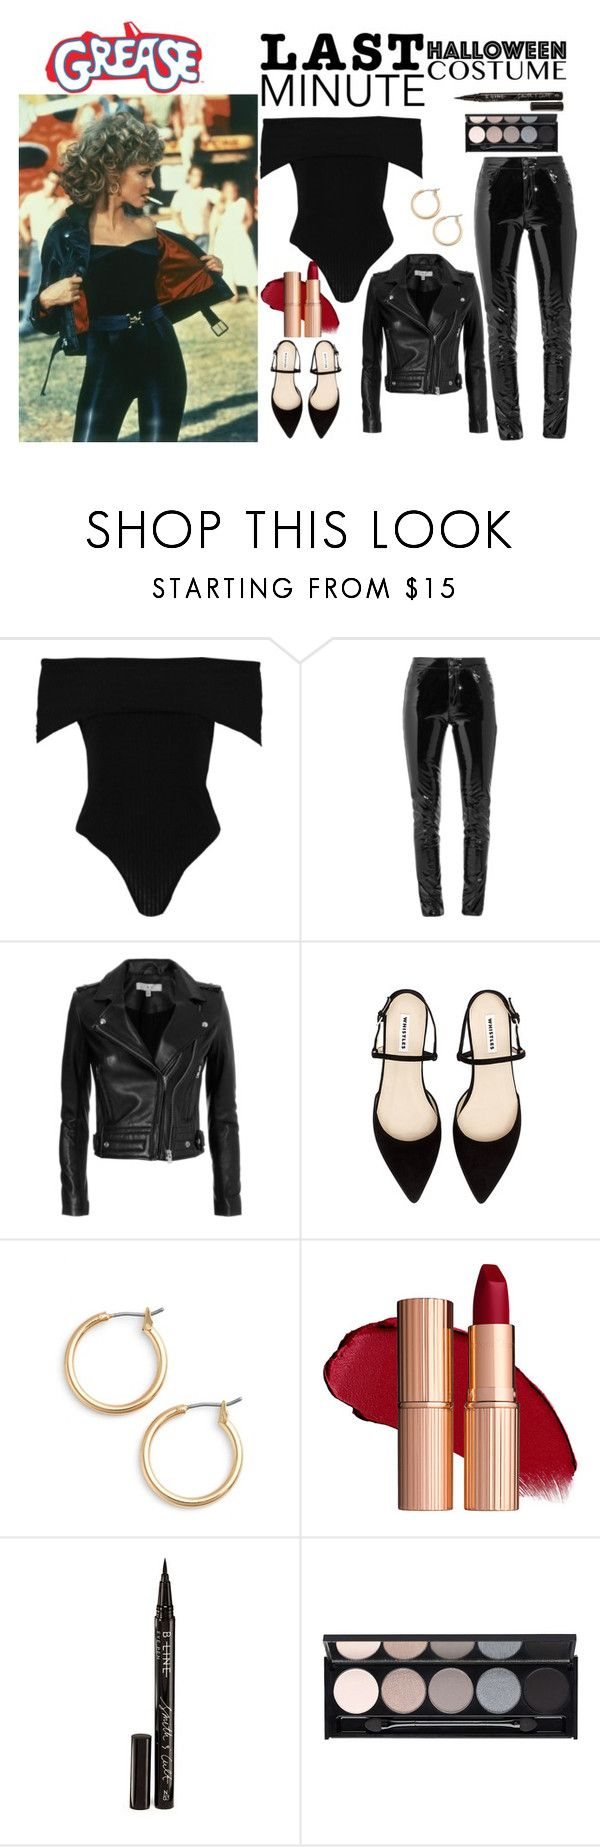 """grease costume"" by deboraaguirregoncalves ❤ liked on Polyvore featuring Boohoo, Anthony Vaccarello, IRO, Nordstrom, Smith & Cult, Witchery, Halloween, Grease, halloweencostume and Halloweenparty"